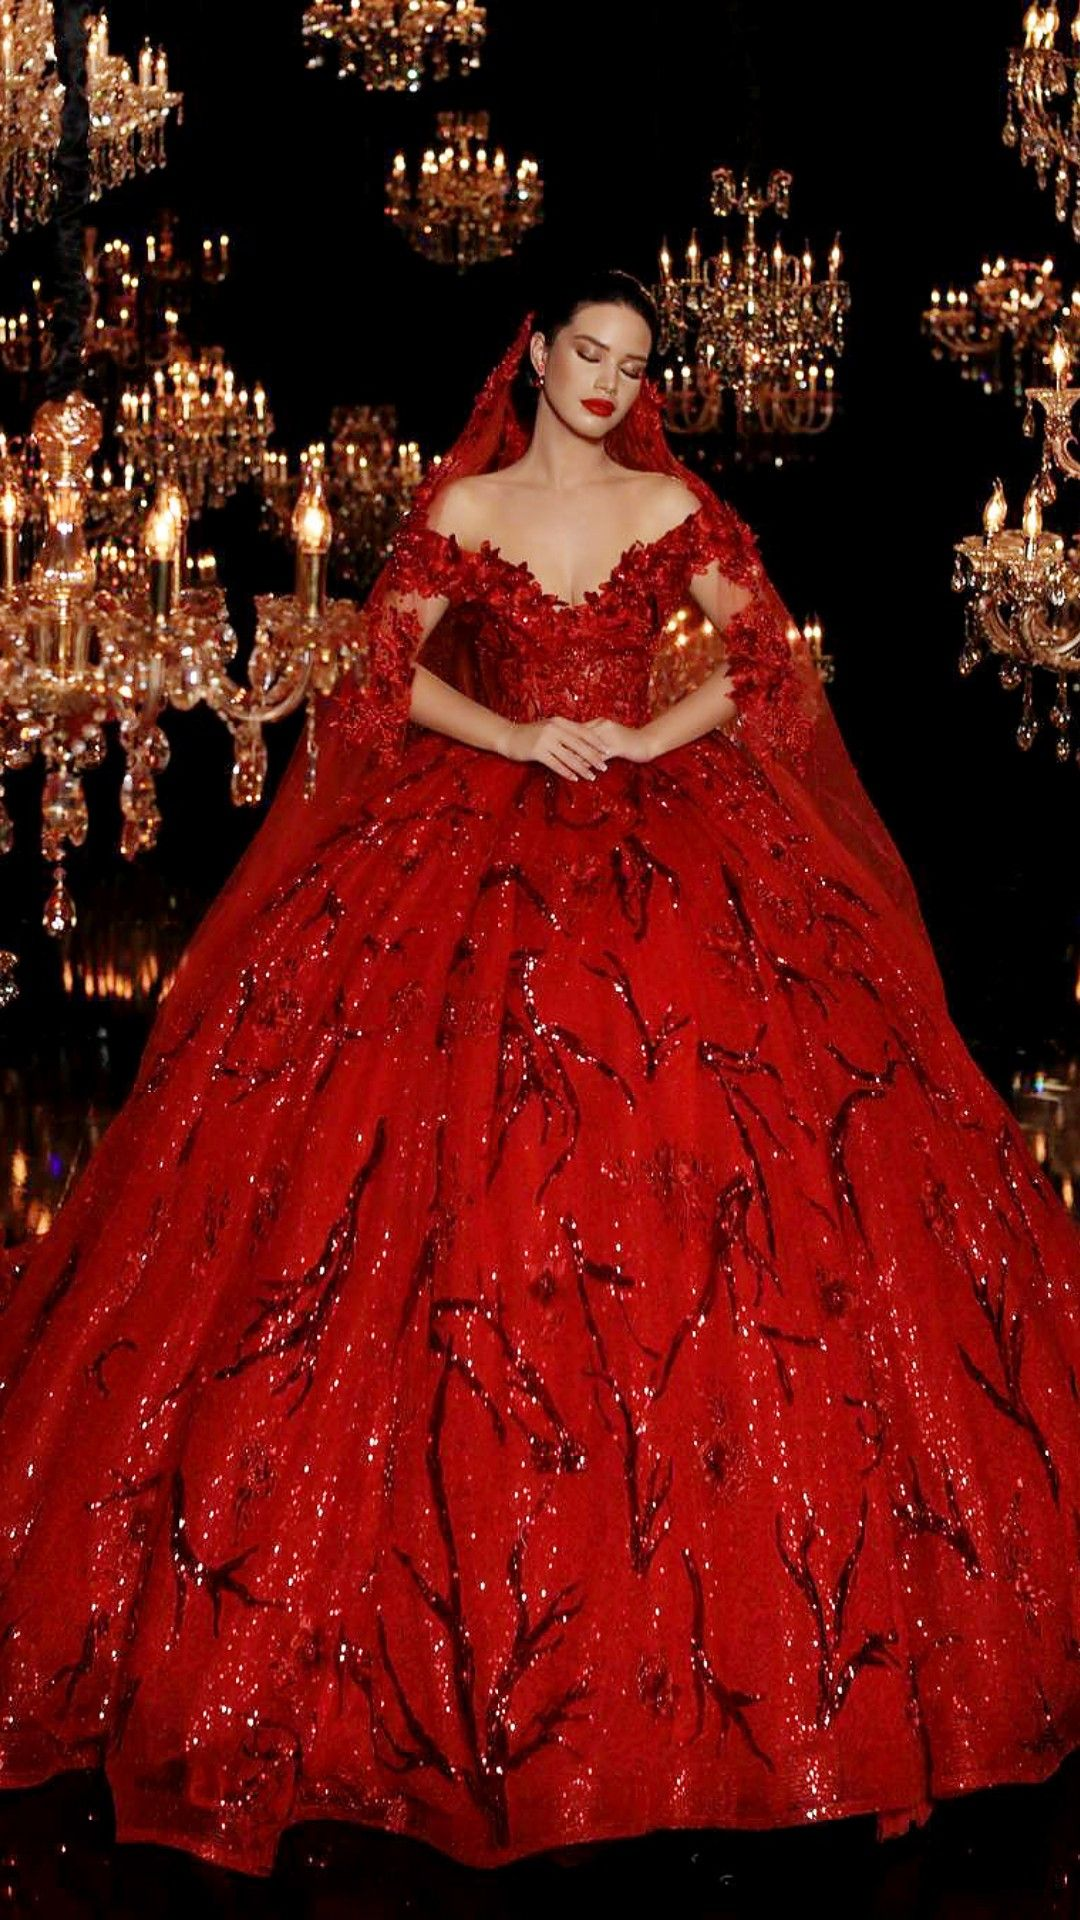 45++ Red wedding gown images ideas in 2021